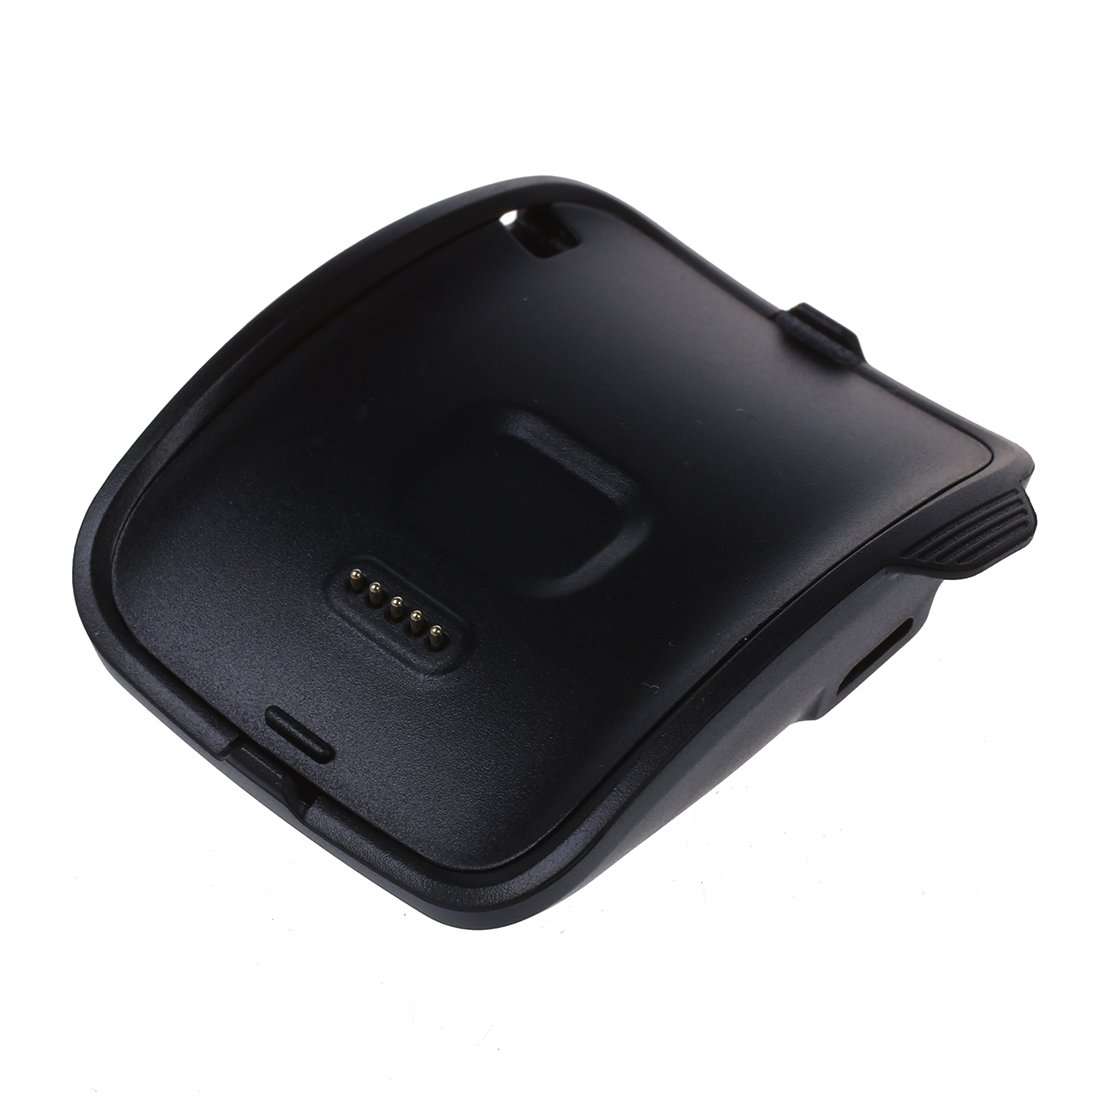 Amazon.com: SODIAL(R) Nueva carga para Samsung Gear S inteligente reloj SM-R750 cuna cargador del muelle + Cable USB Negro: Cell Phones & Accessories